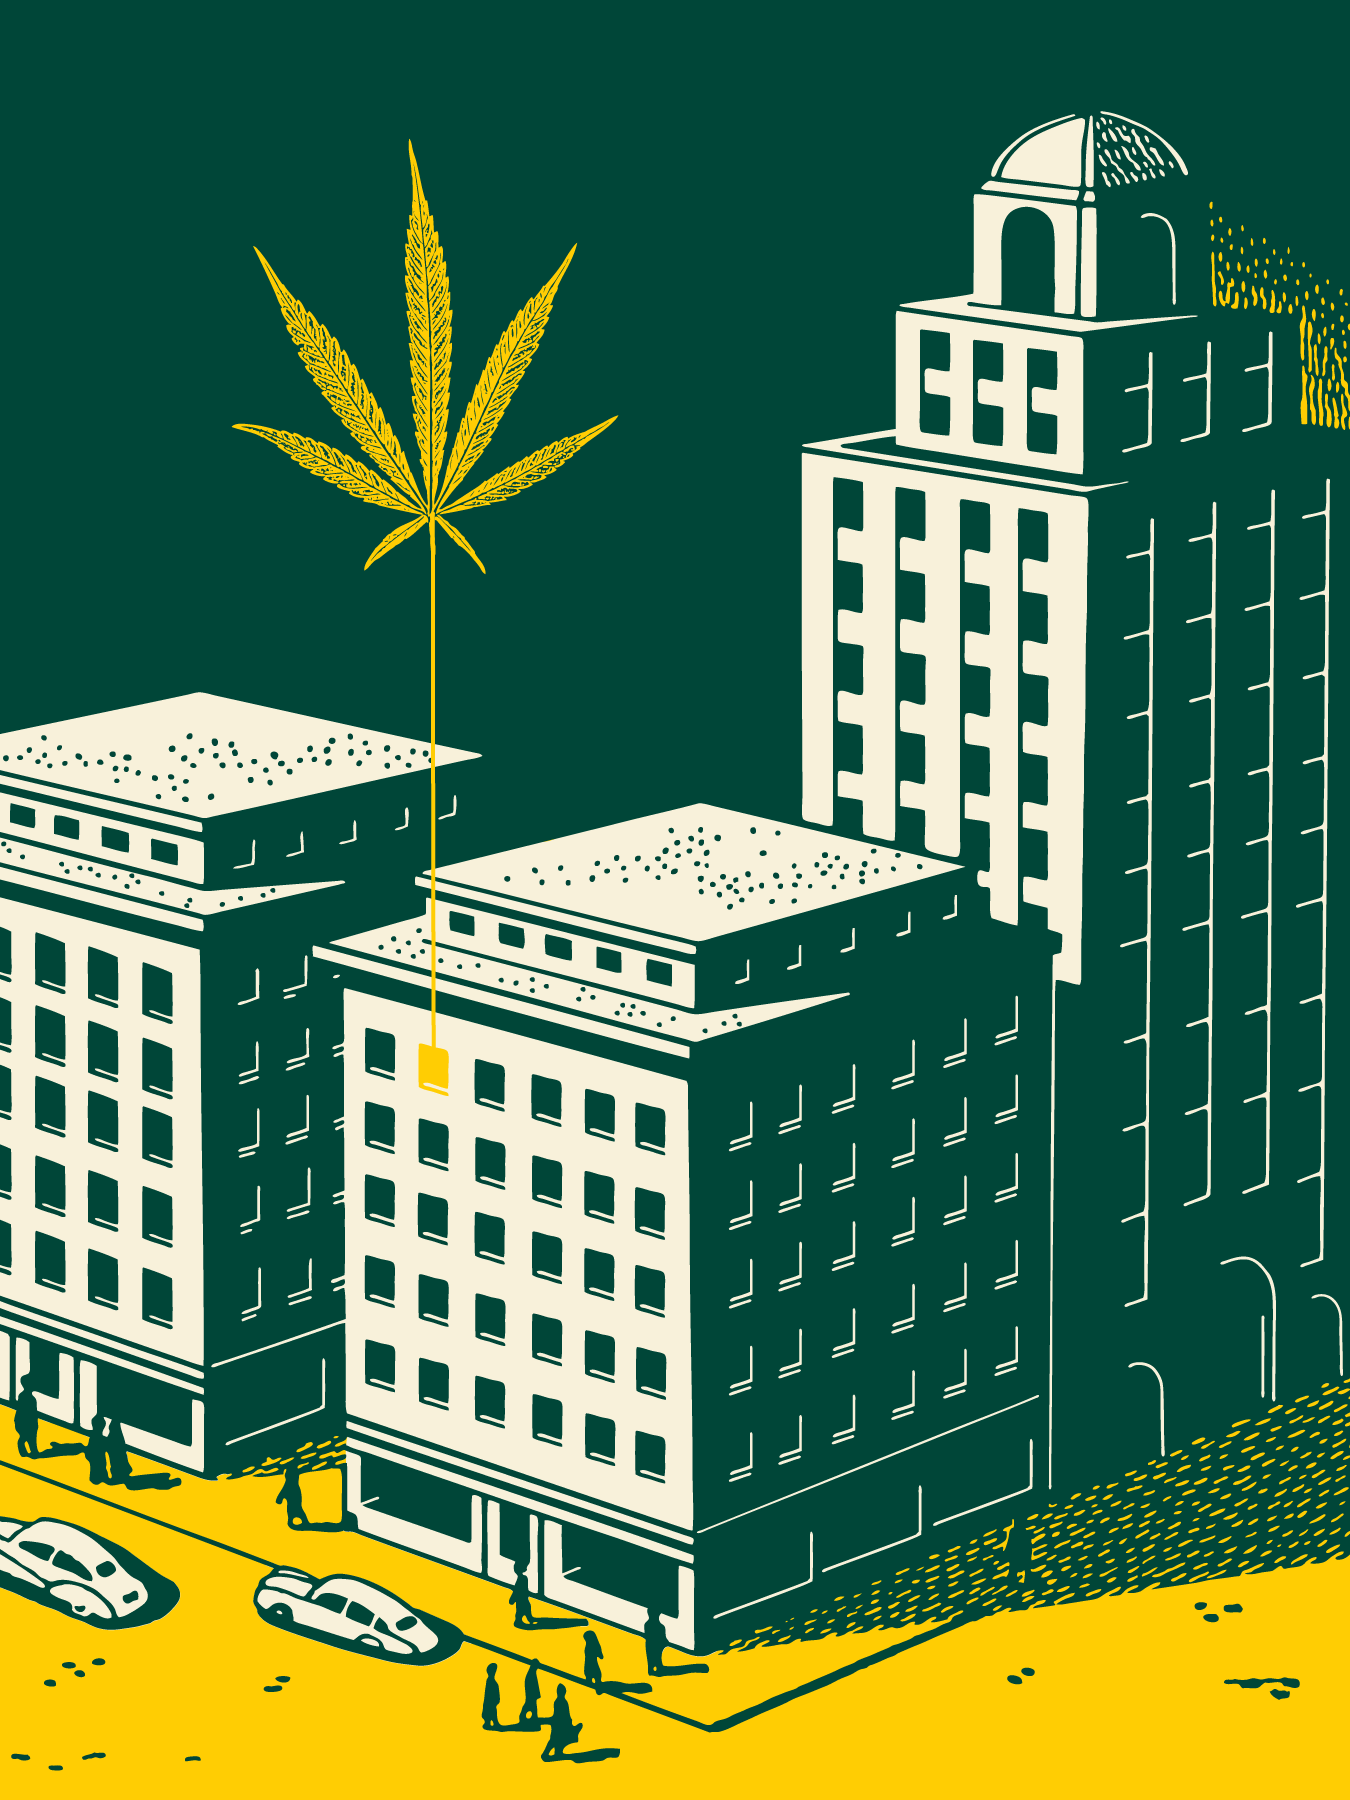 can a landlord ban cannabis in a legal state, can you smoke marijuana in your apartment, landlord privileges and laws regarding cannabis, tenant rights